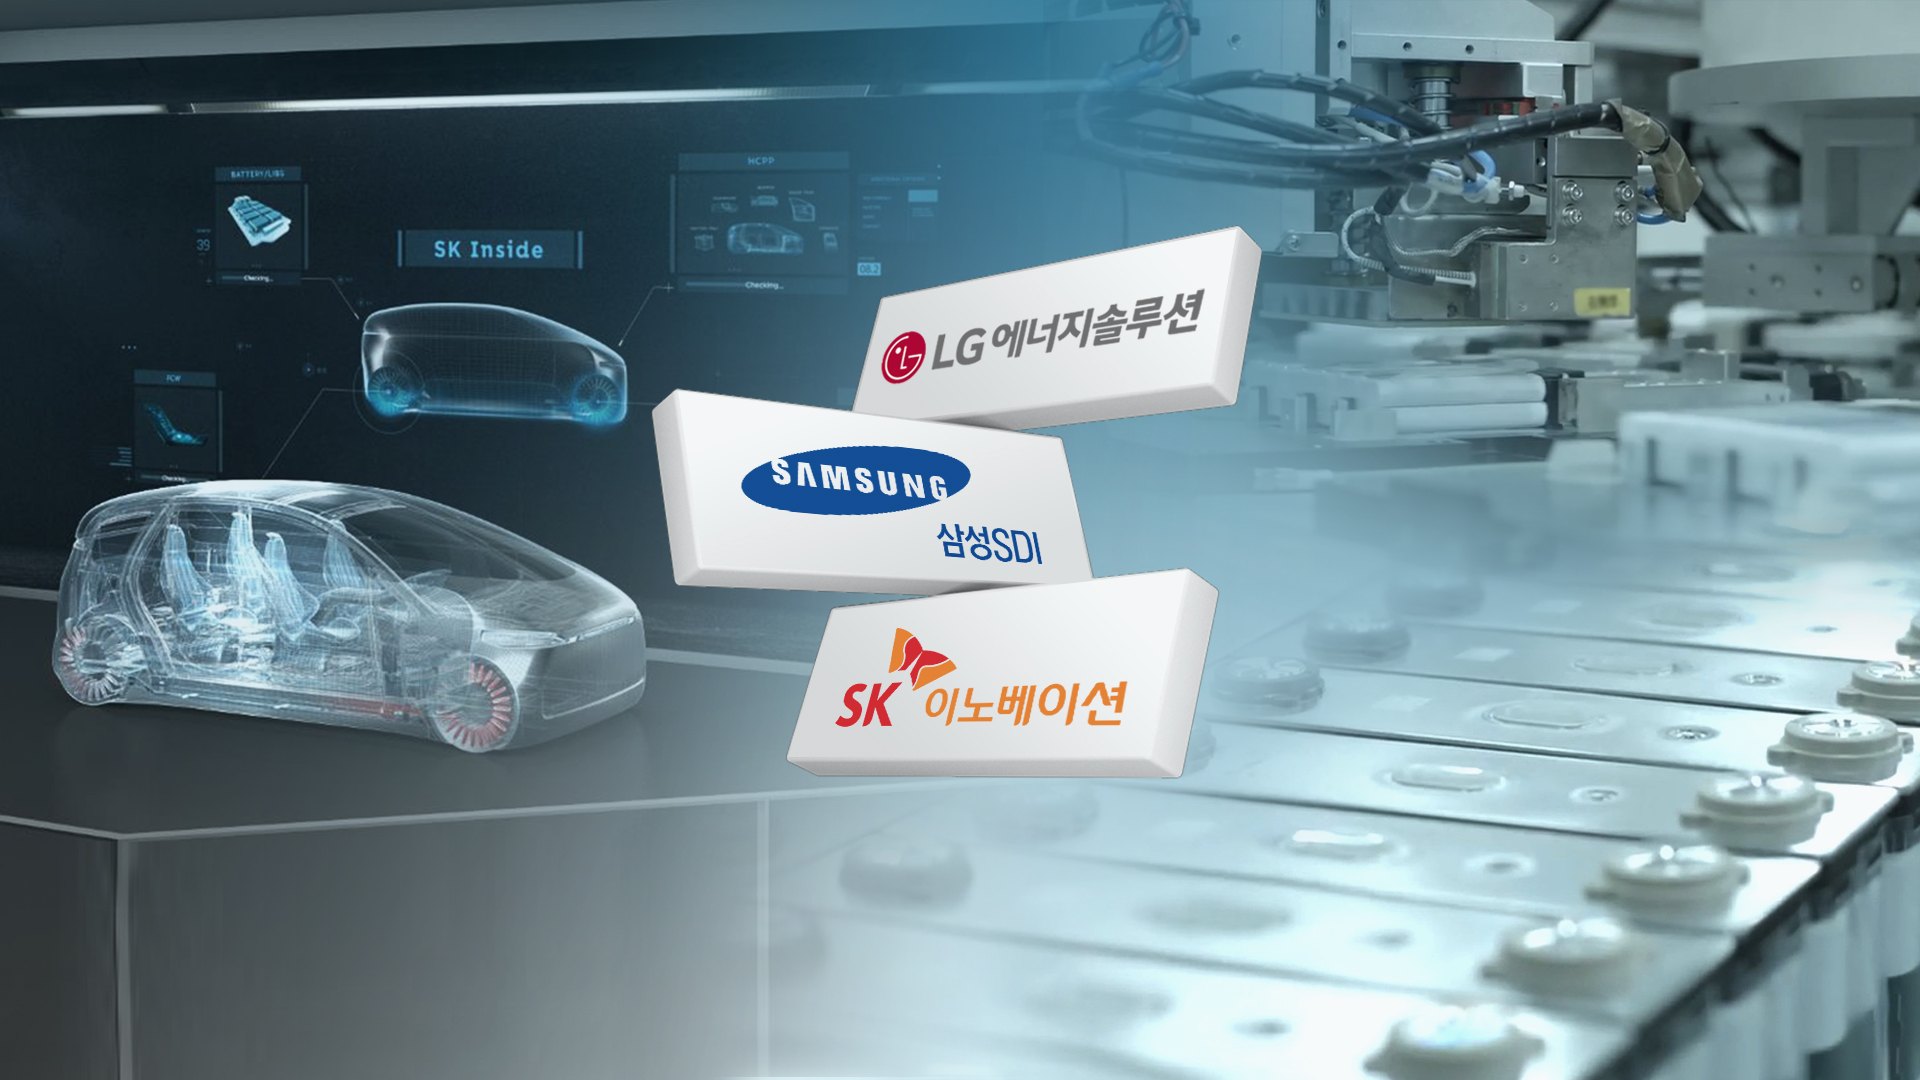 S. Korean battery makers face uncertainty over safety issues, lawsuit